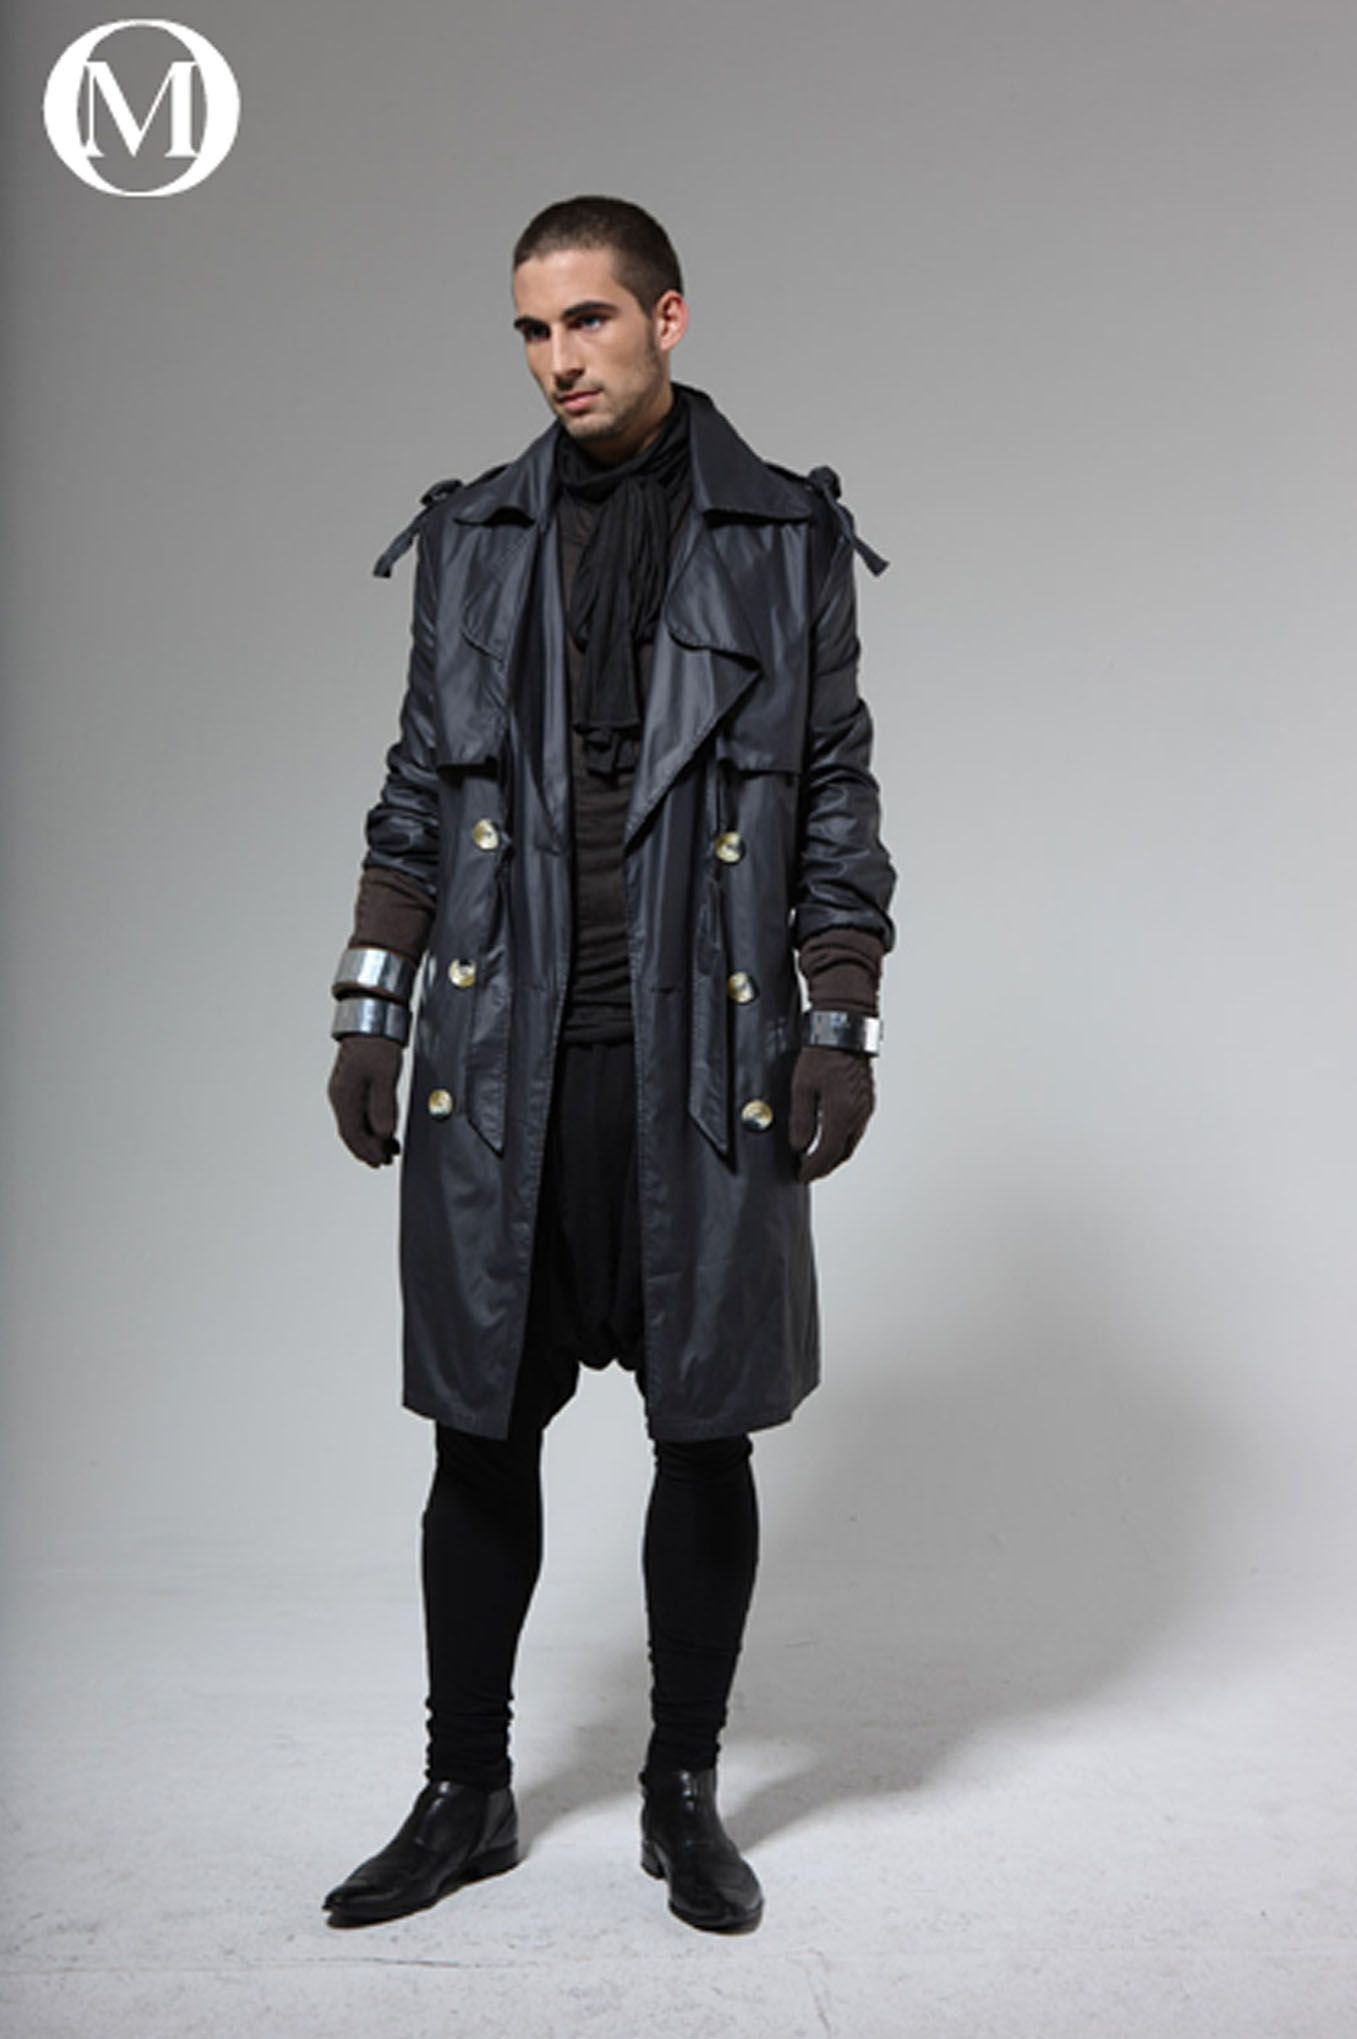 In Love With This New Dark Punk Rock Fashion Trend Future Of Mens Fashion Dystopian